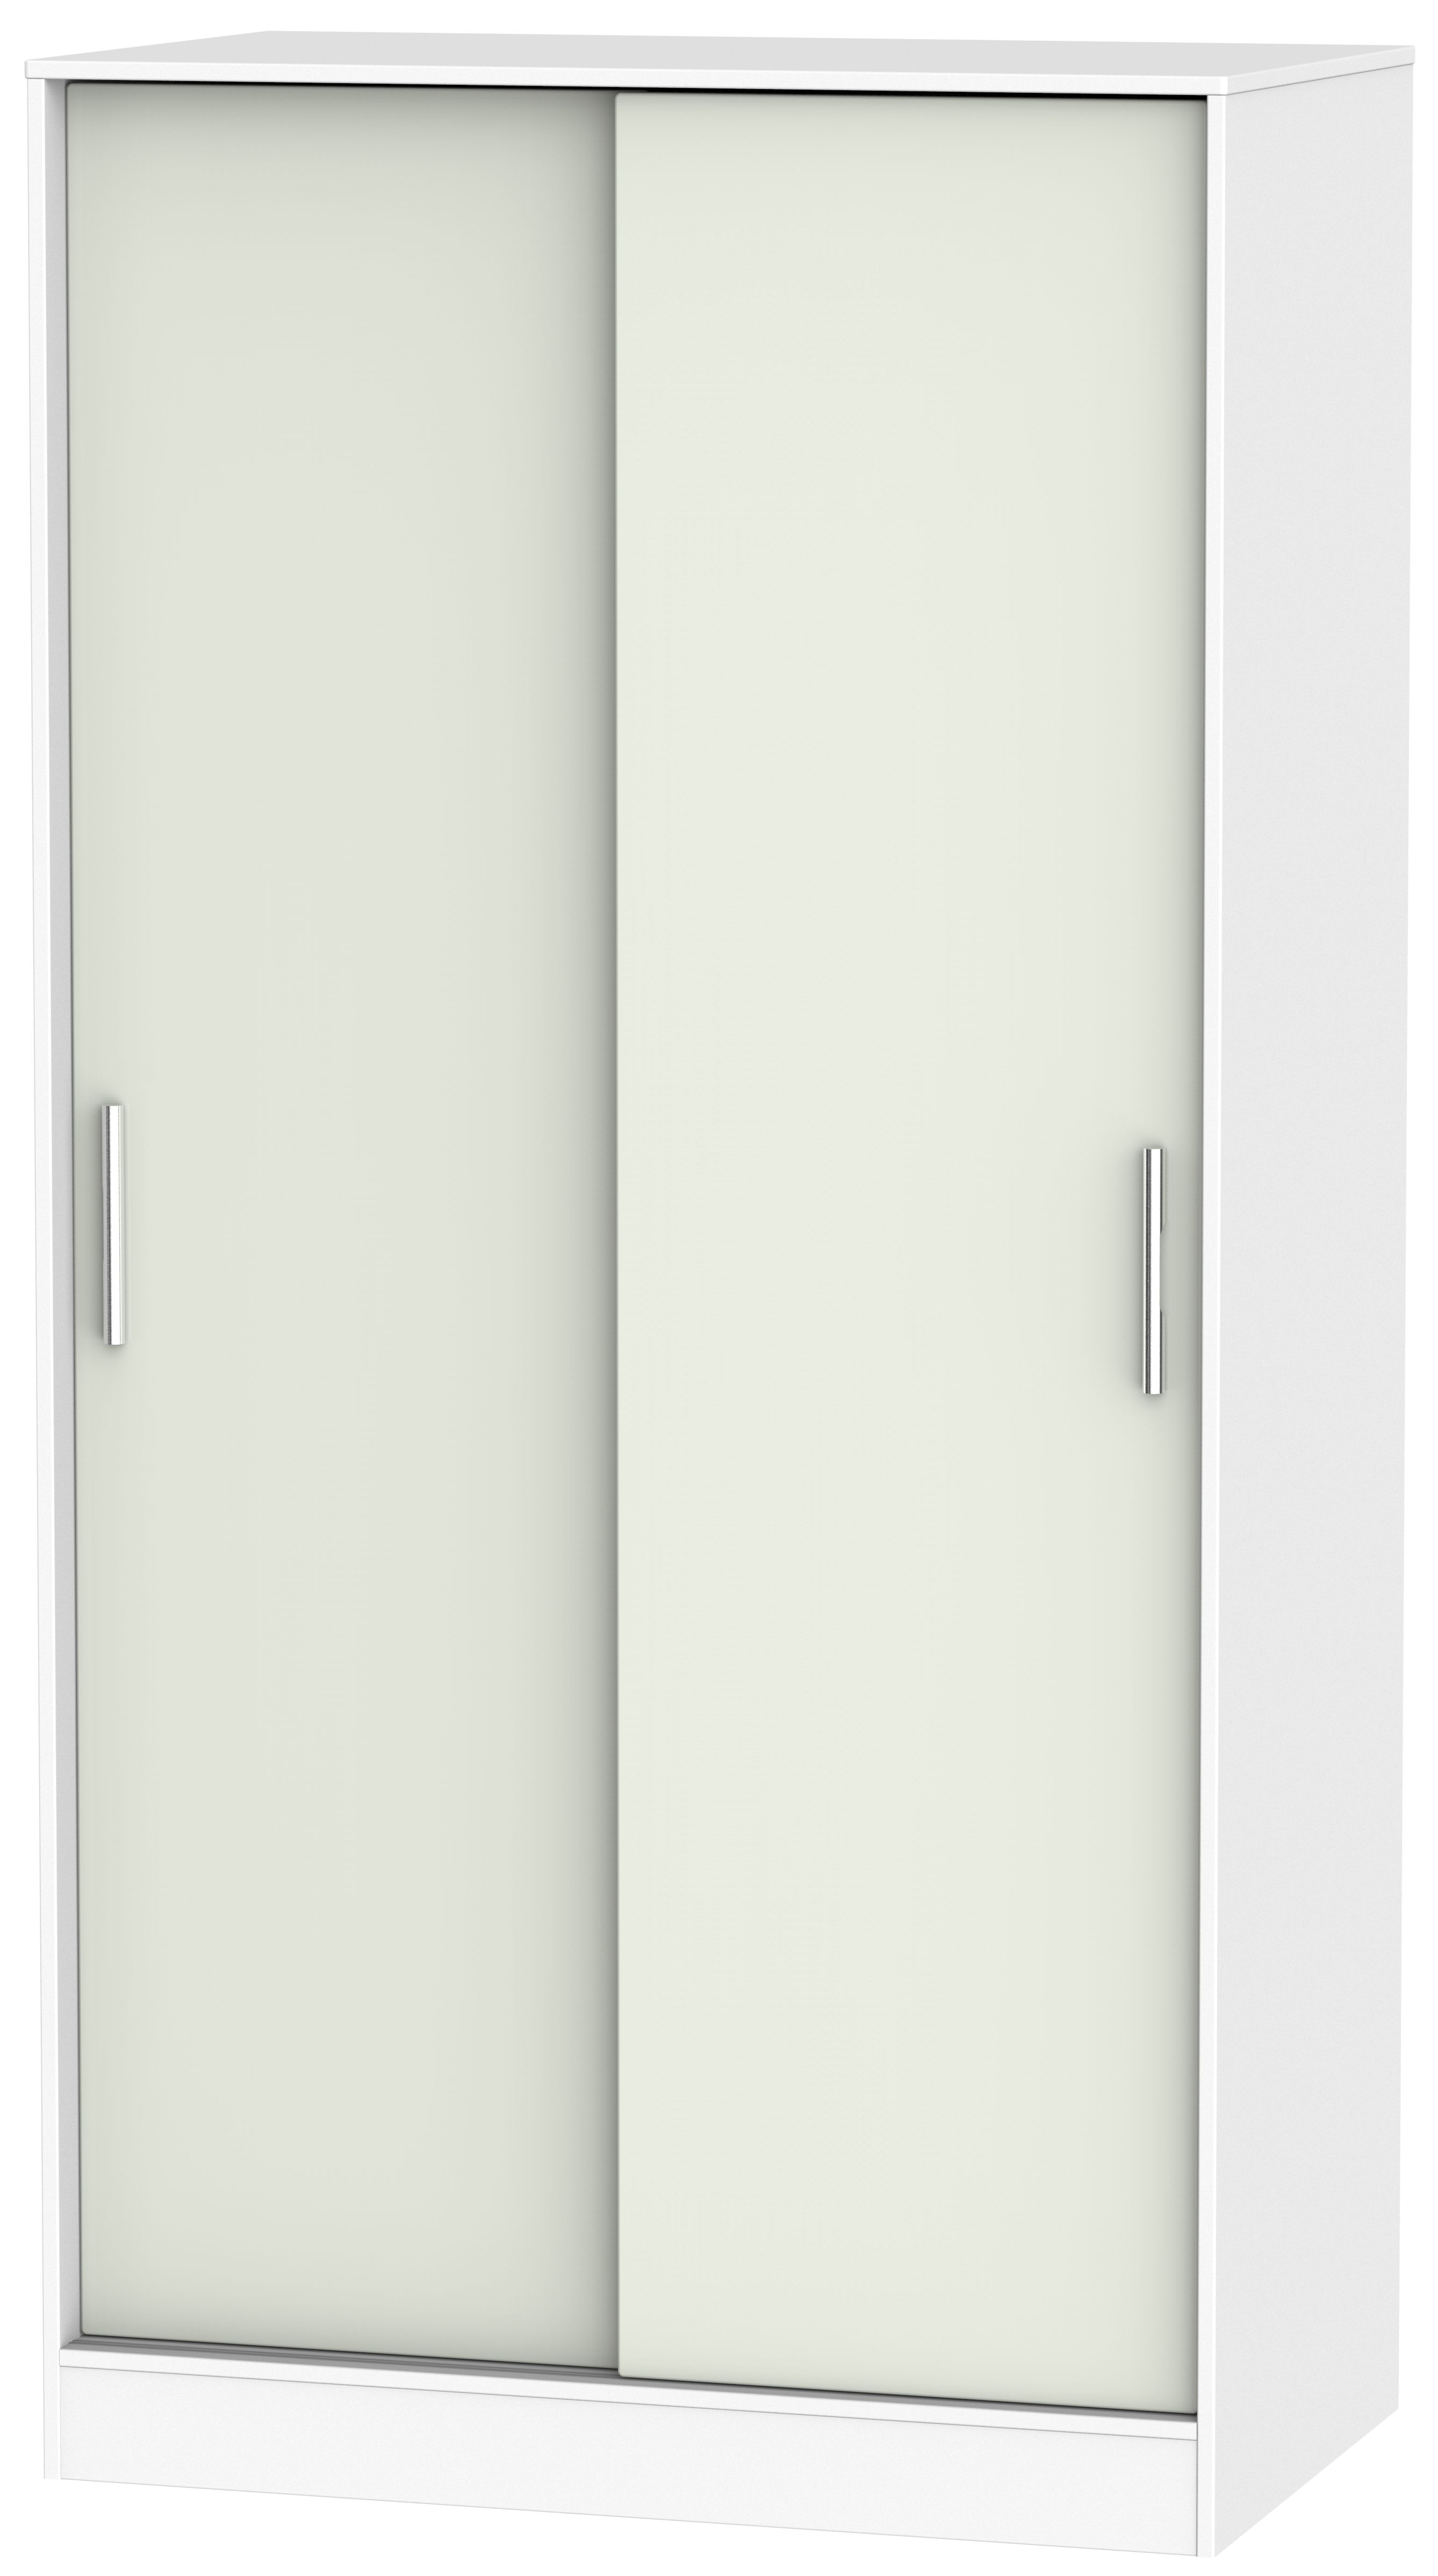 Knightsbridge Kaschmir Matt and White Sliding Wardrobe - Wide